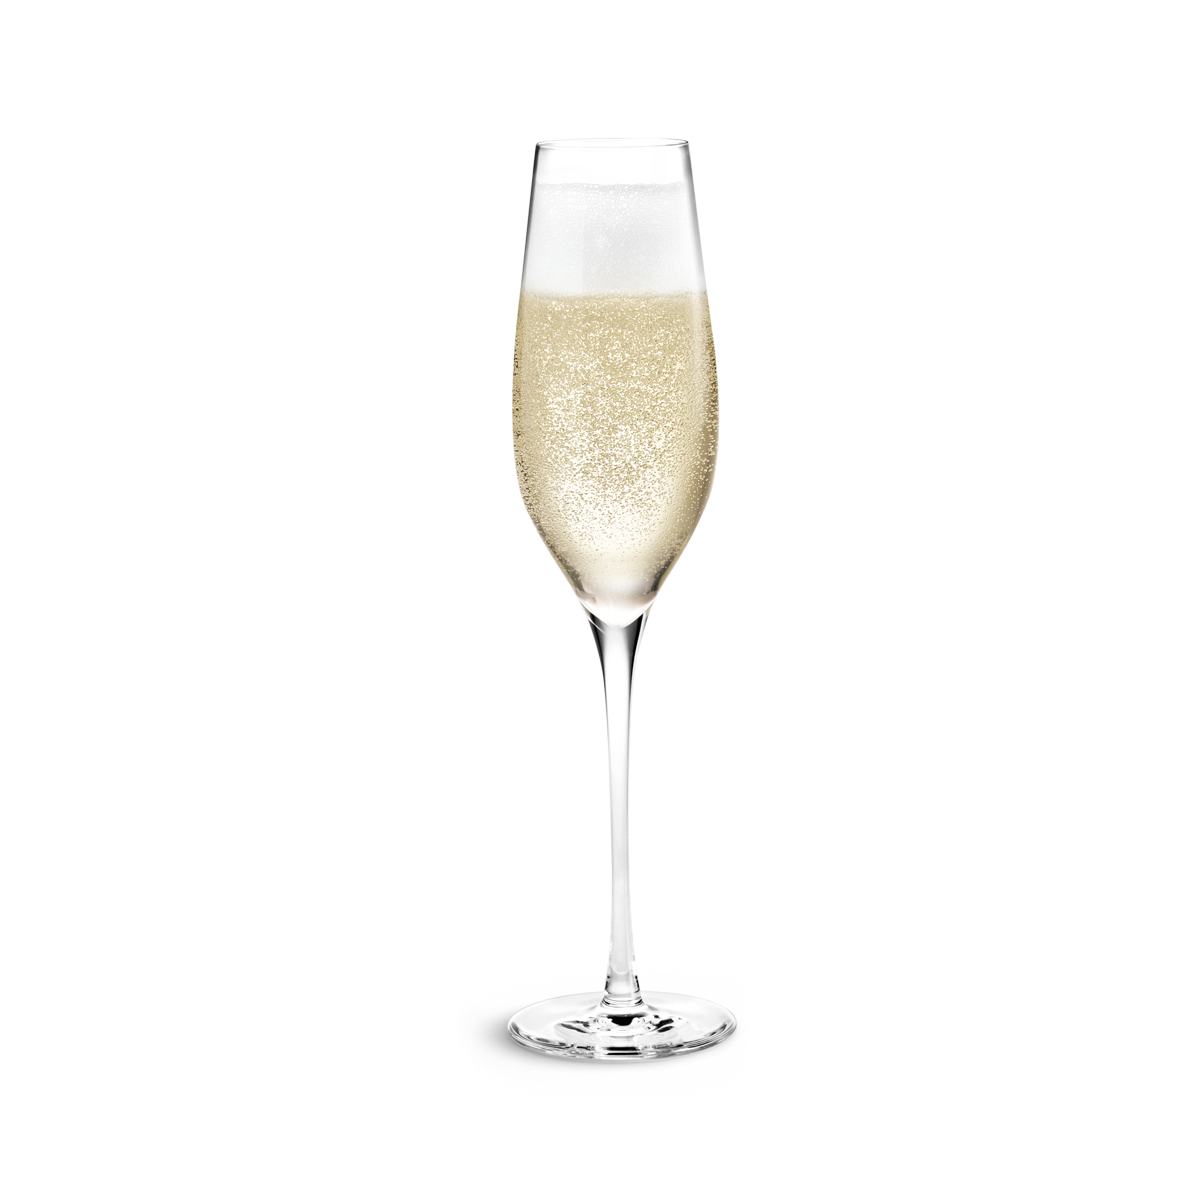 champagne glasses png images galleries with a bite. Black Bedroom Furniture Sets. Home Design Ideas